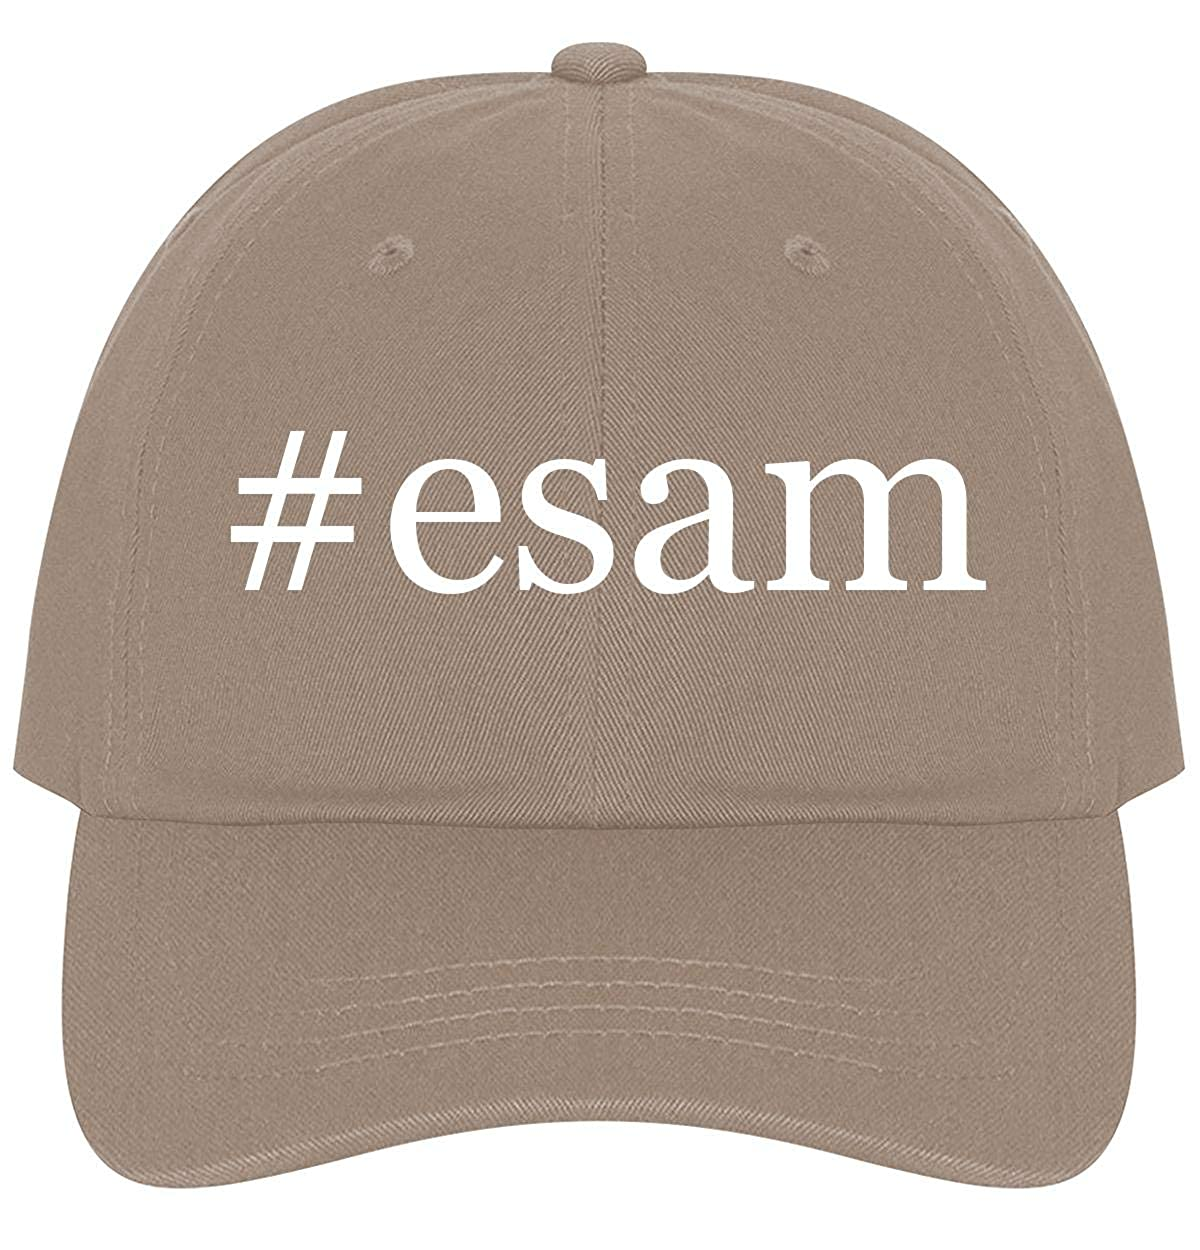 The Town Butler #Esam - A Nice Comfortable Adjustable Hashtag Dad Hat Cap